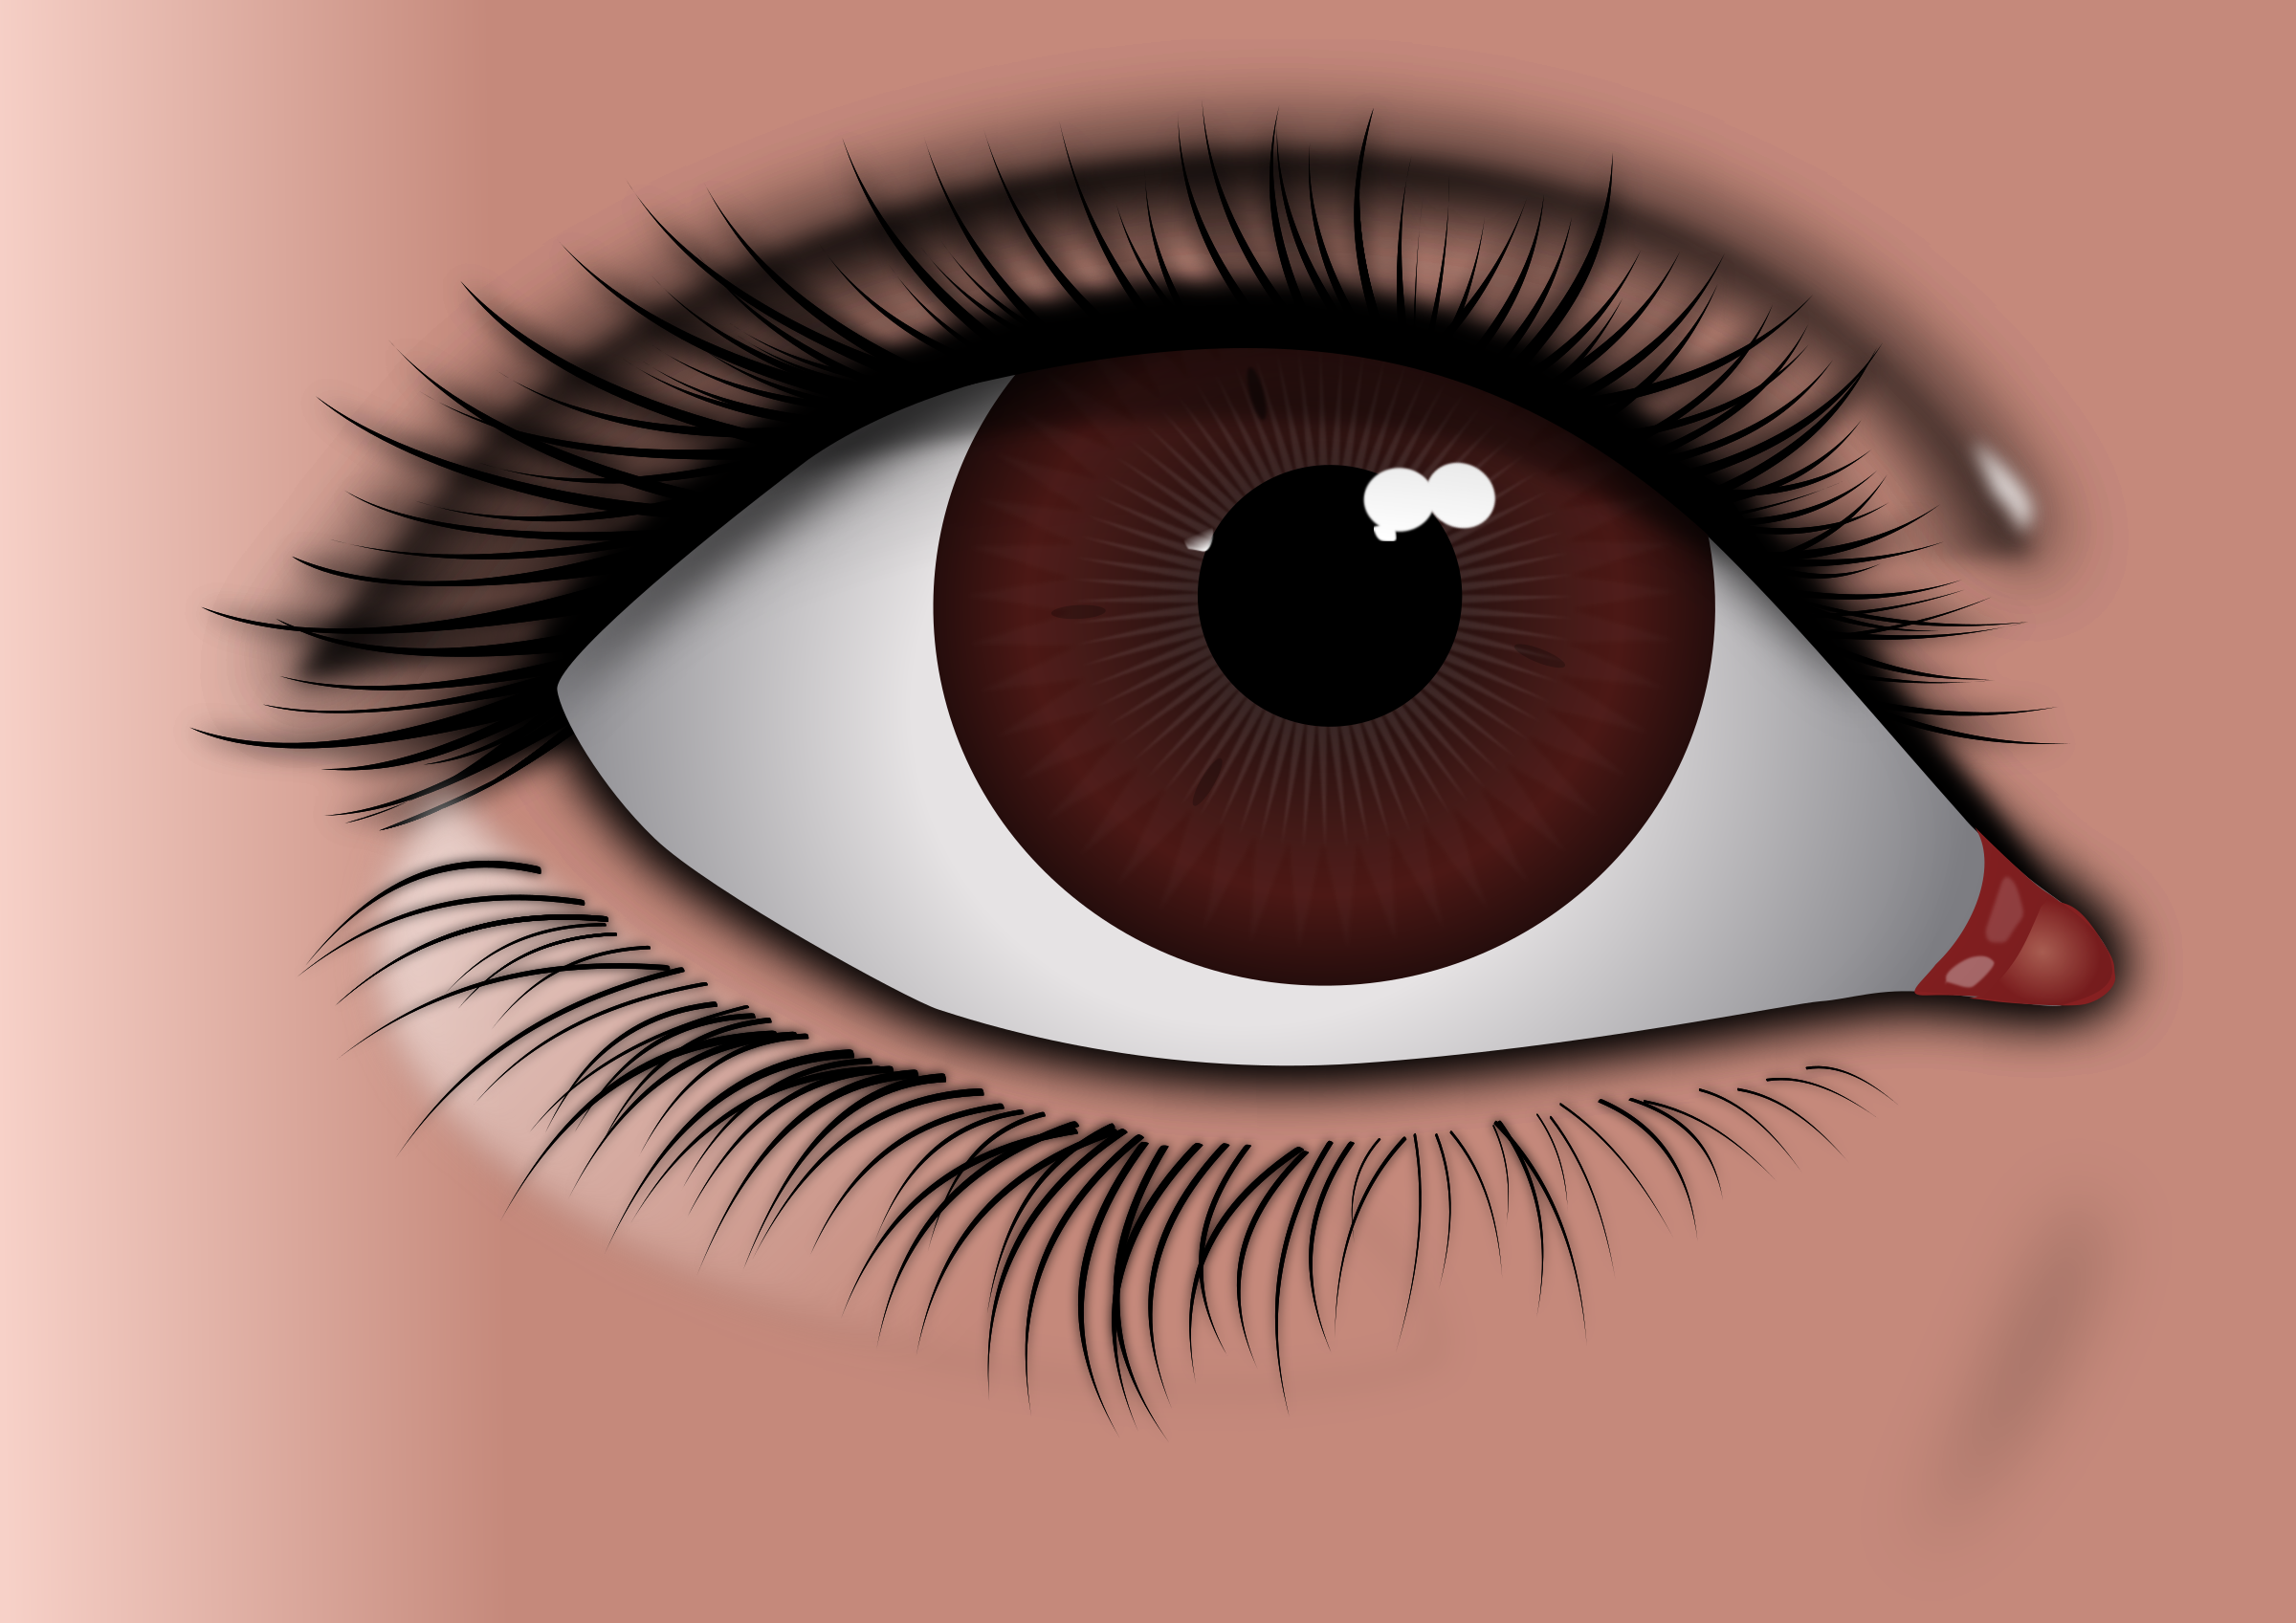 Realistic clipart #6, Download drawings